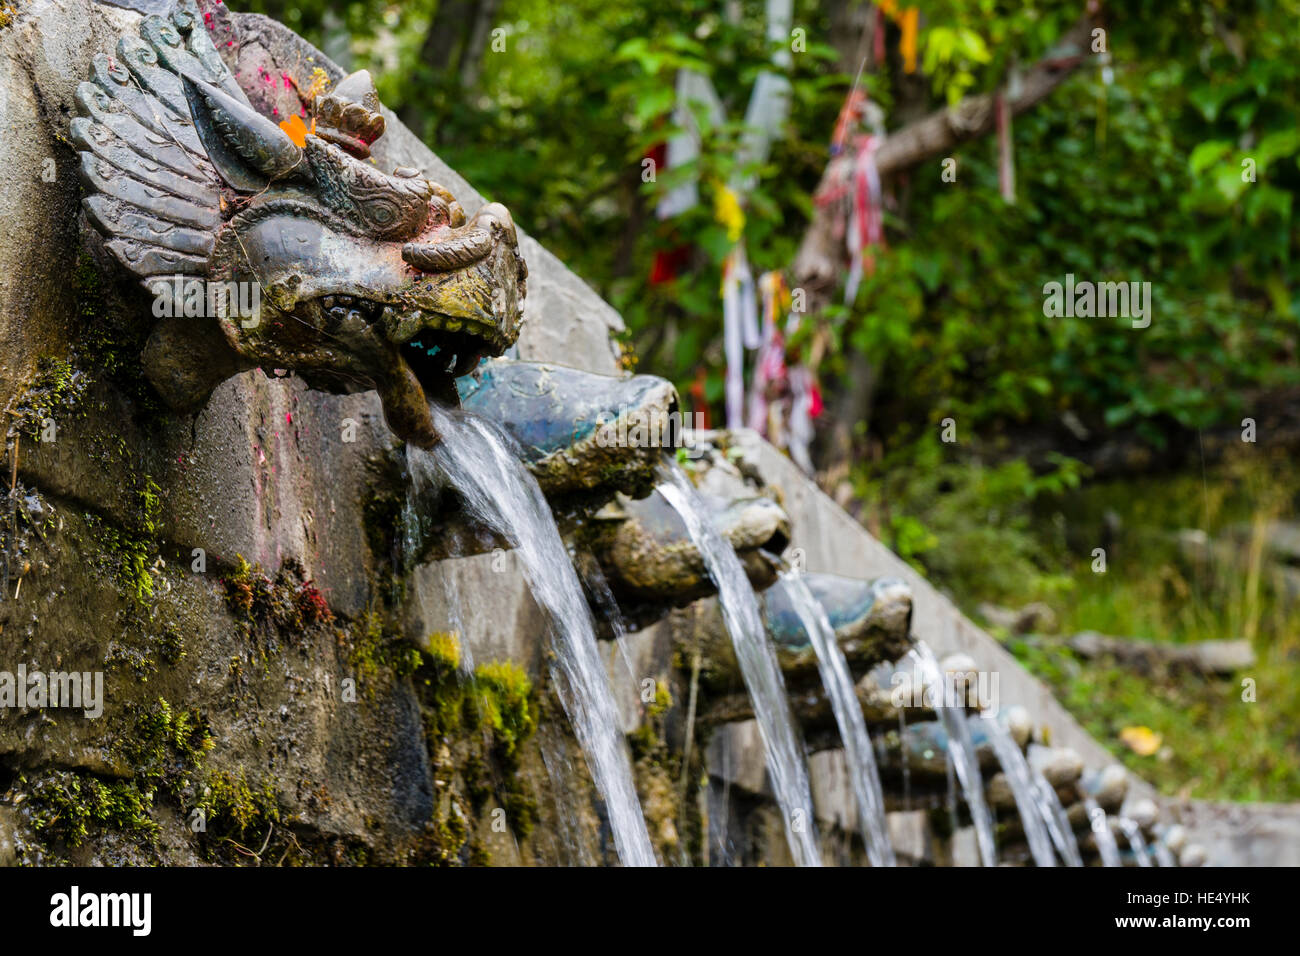 The sacred water flows out of 108 pipes around the temple complex - Stock Image